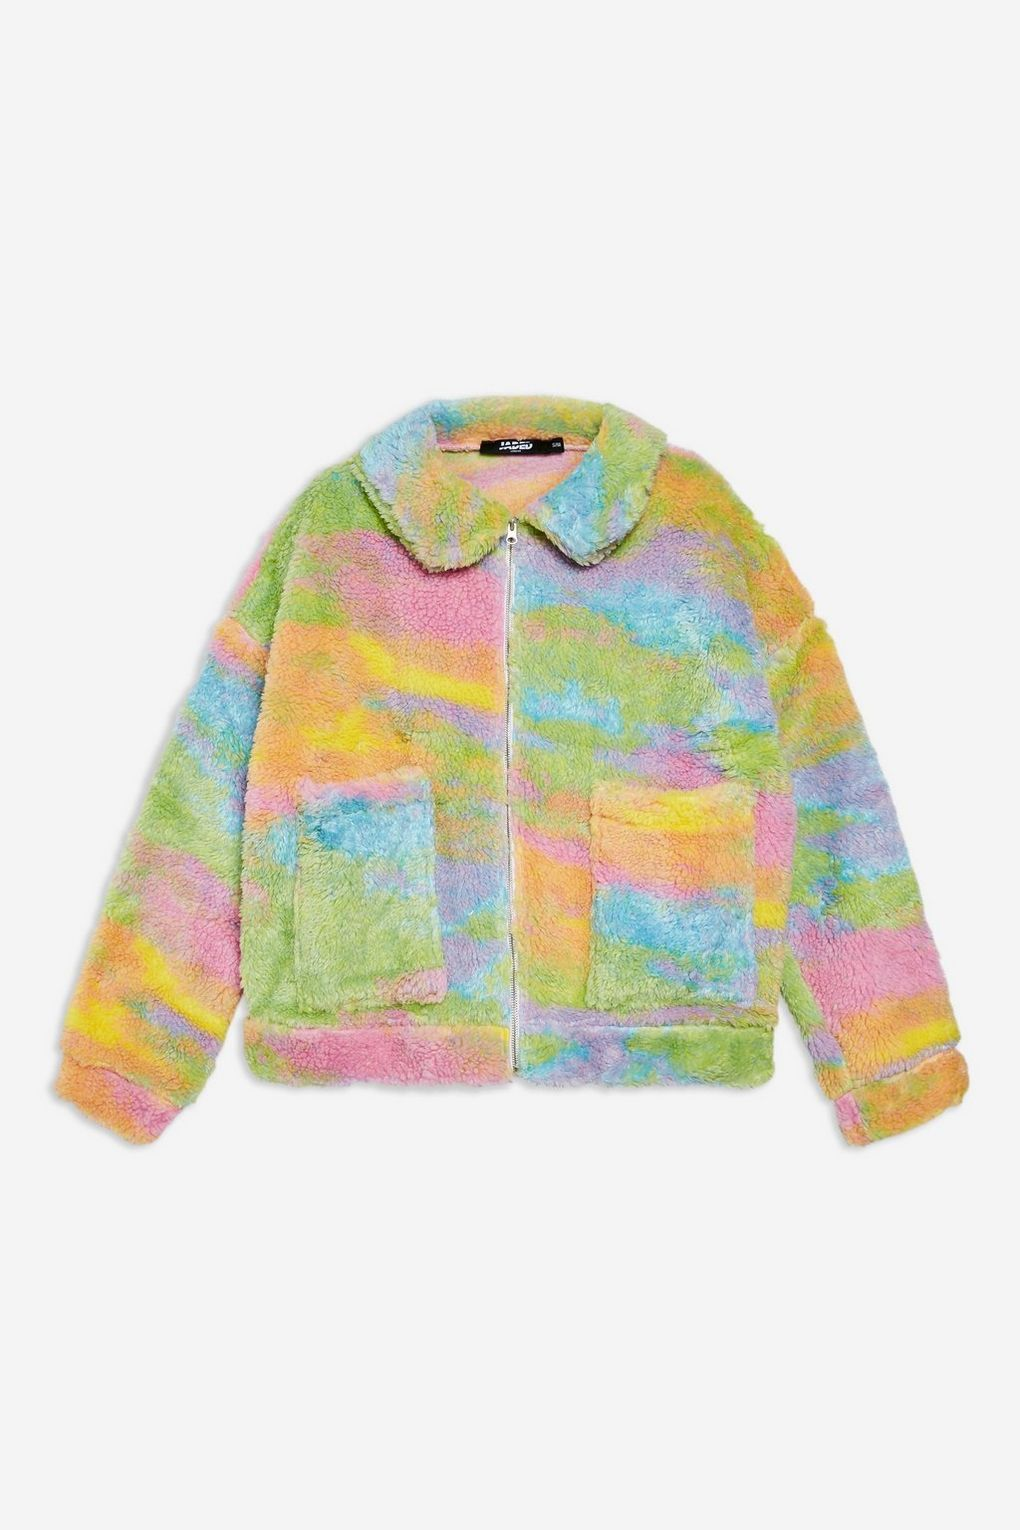 Rainbow Fleece Jacket By Jaded London